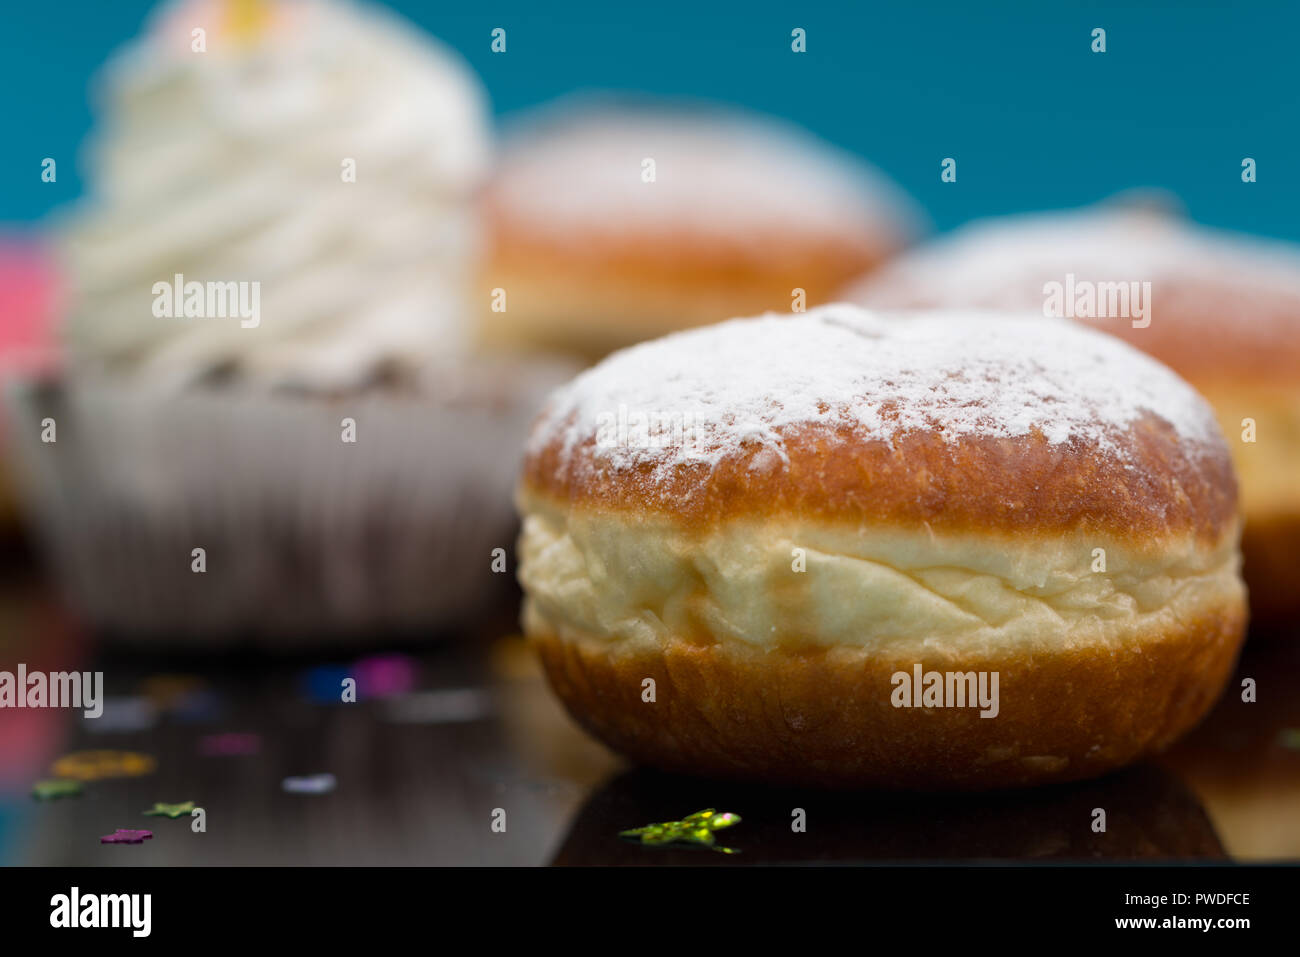 Cream bun drizzled with icing sugar on a buffet at a party with copy space in a close up view - Stock Image